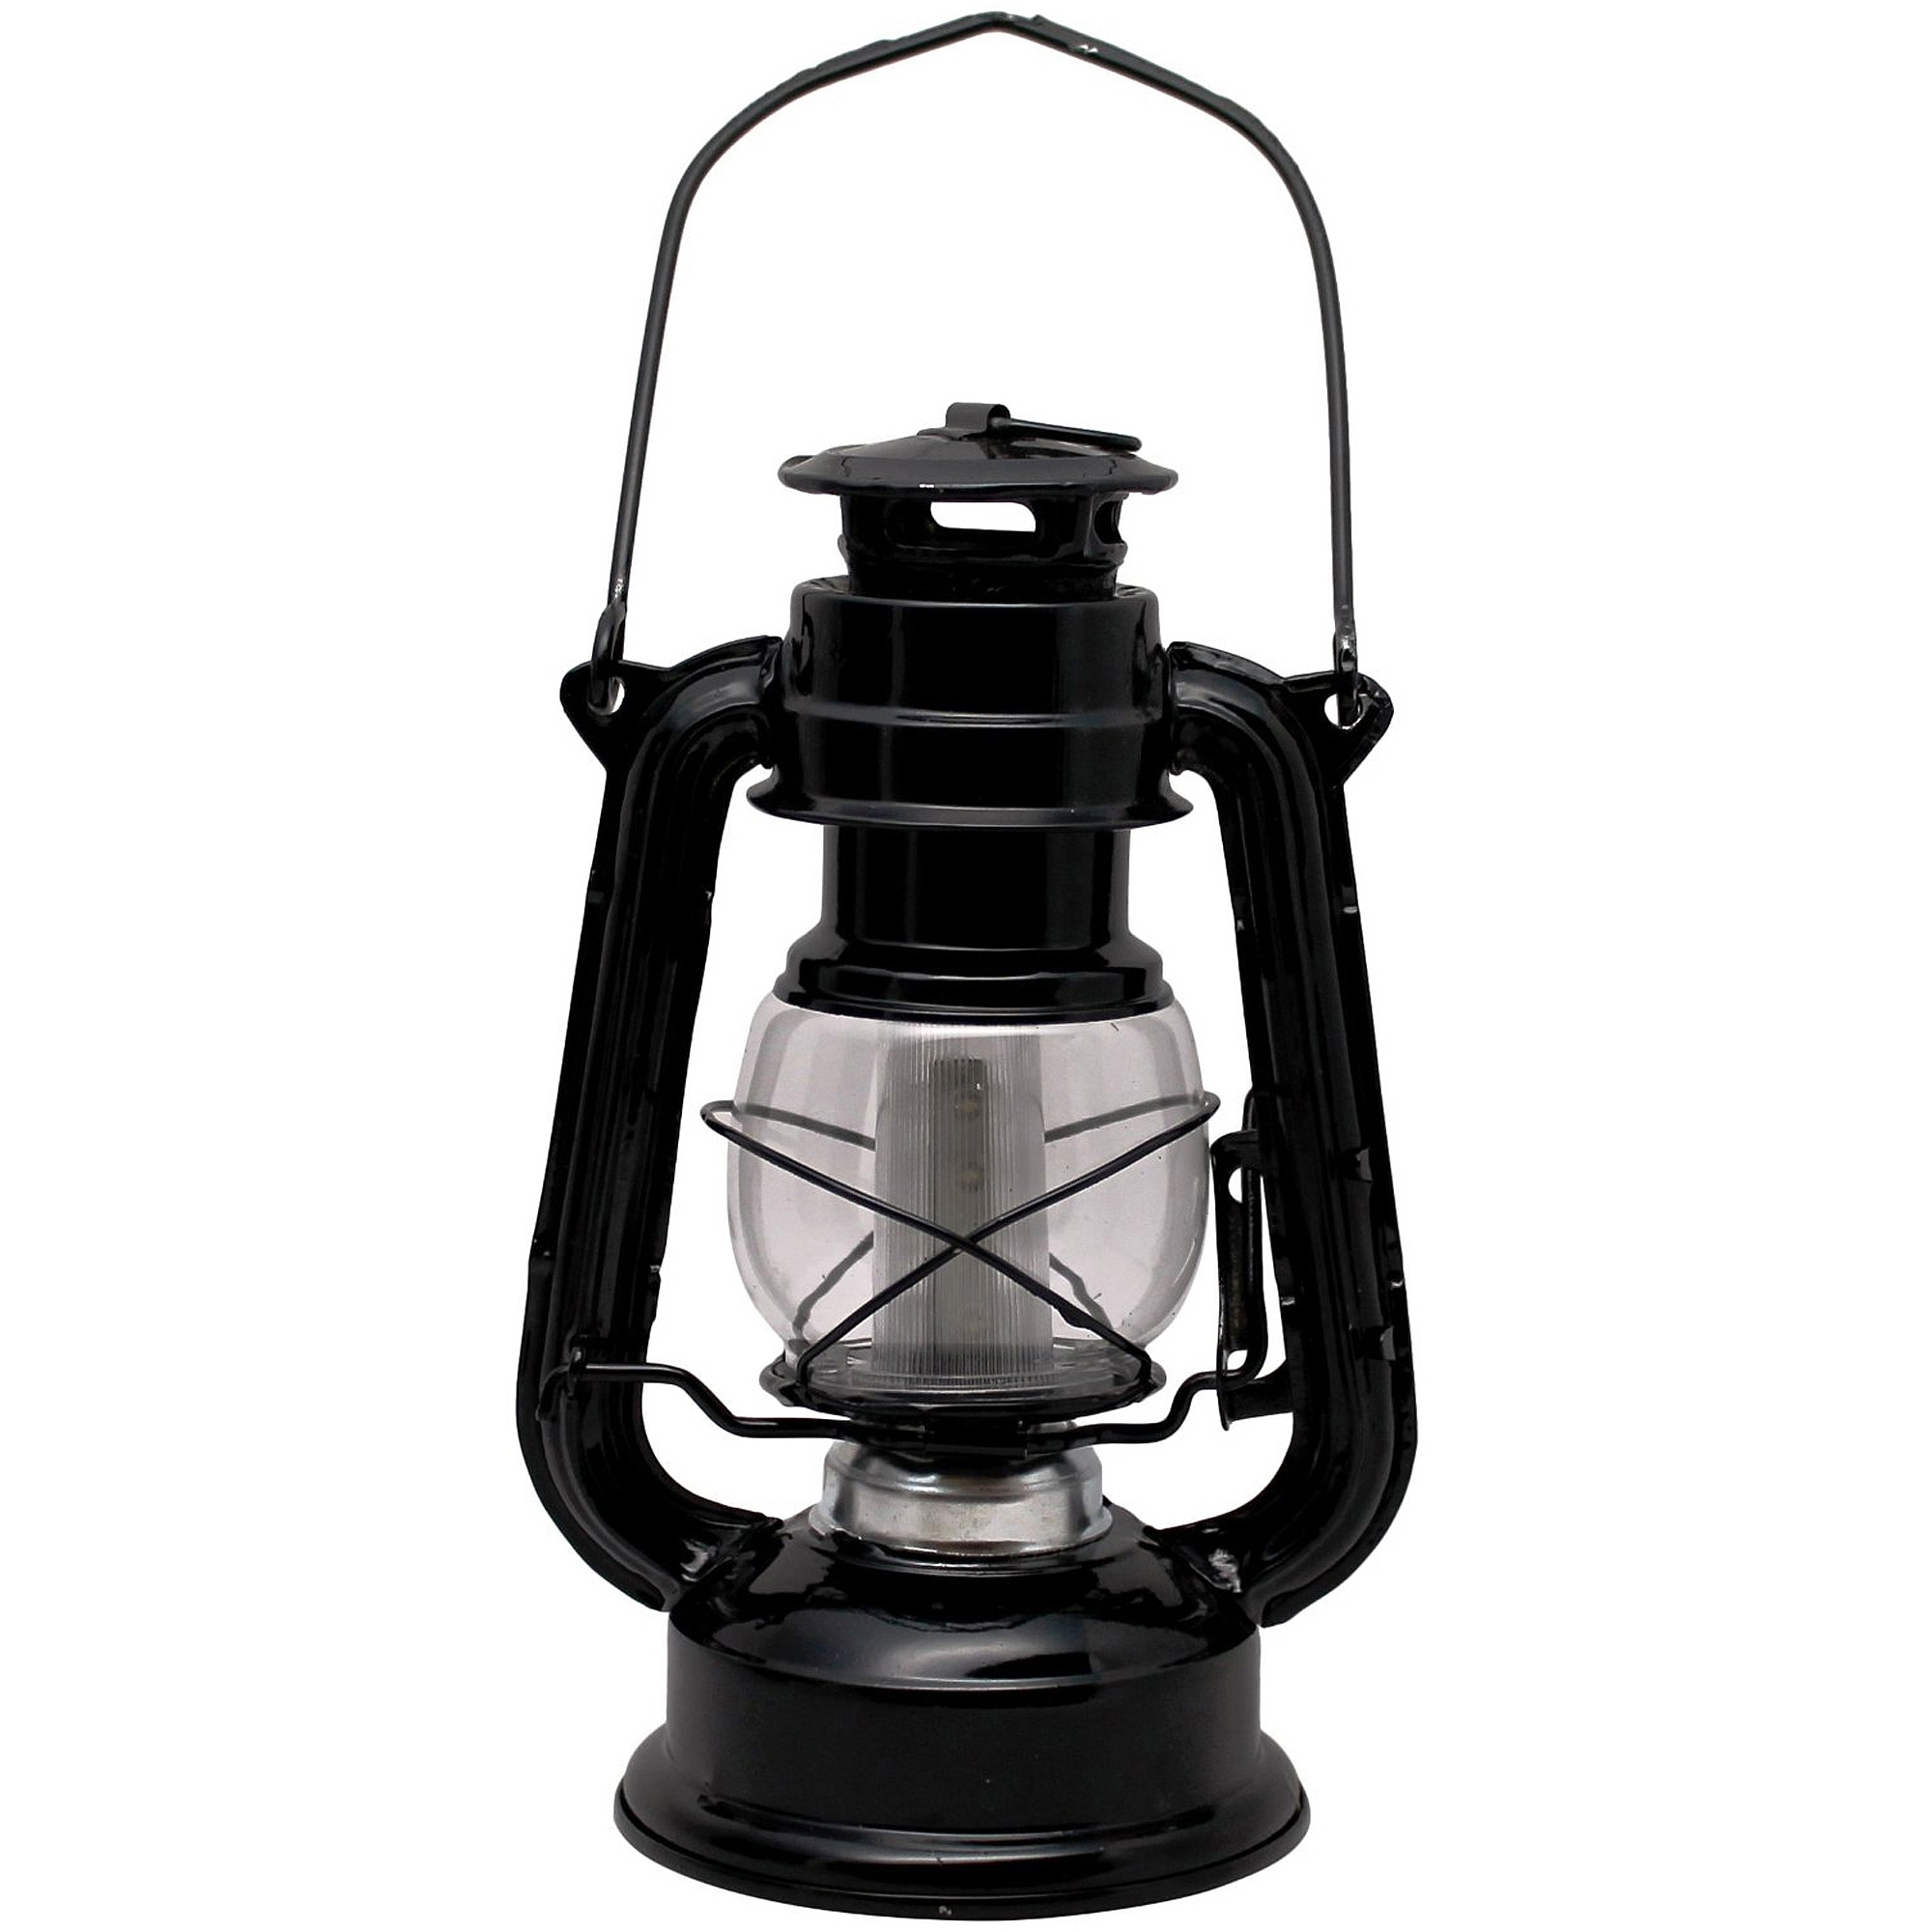 Sentry Railroad 12-Led Lantern, Black - Walmart inside Outdoor Railroad Lanterns (Image 18 of 20)